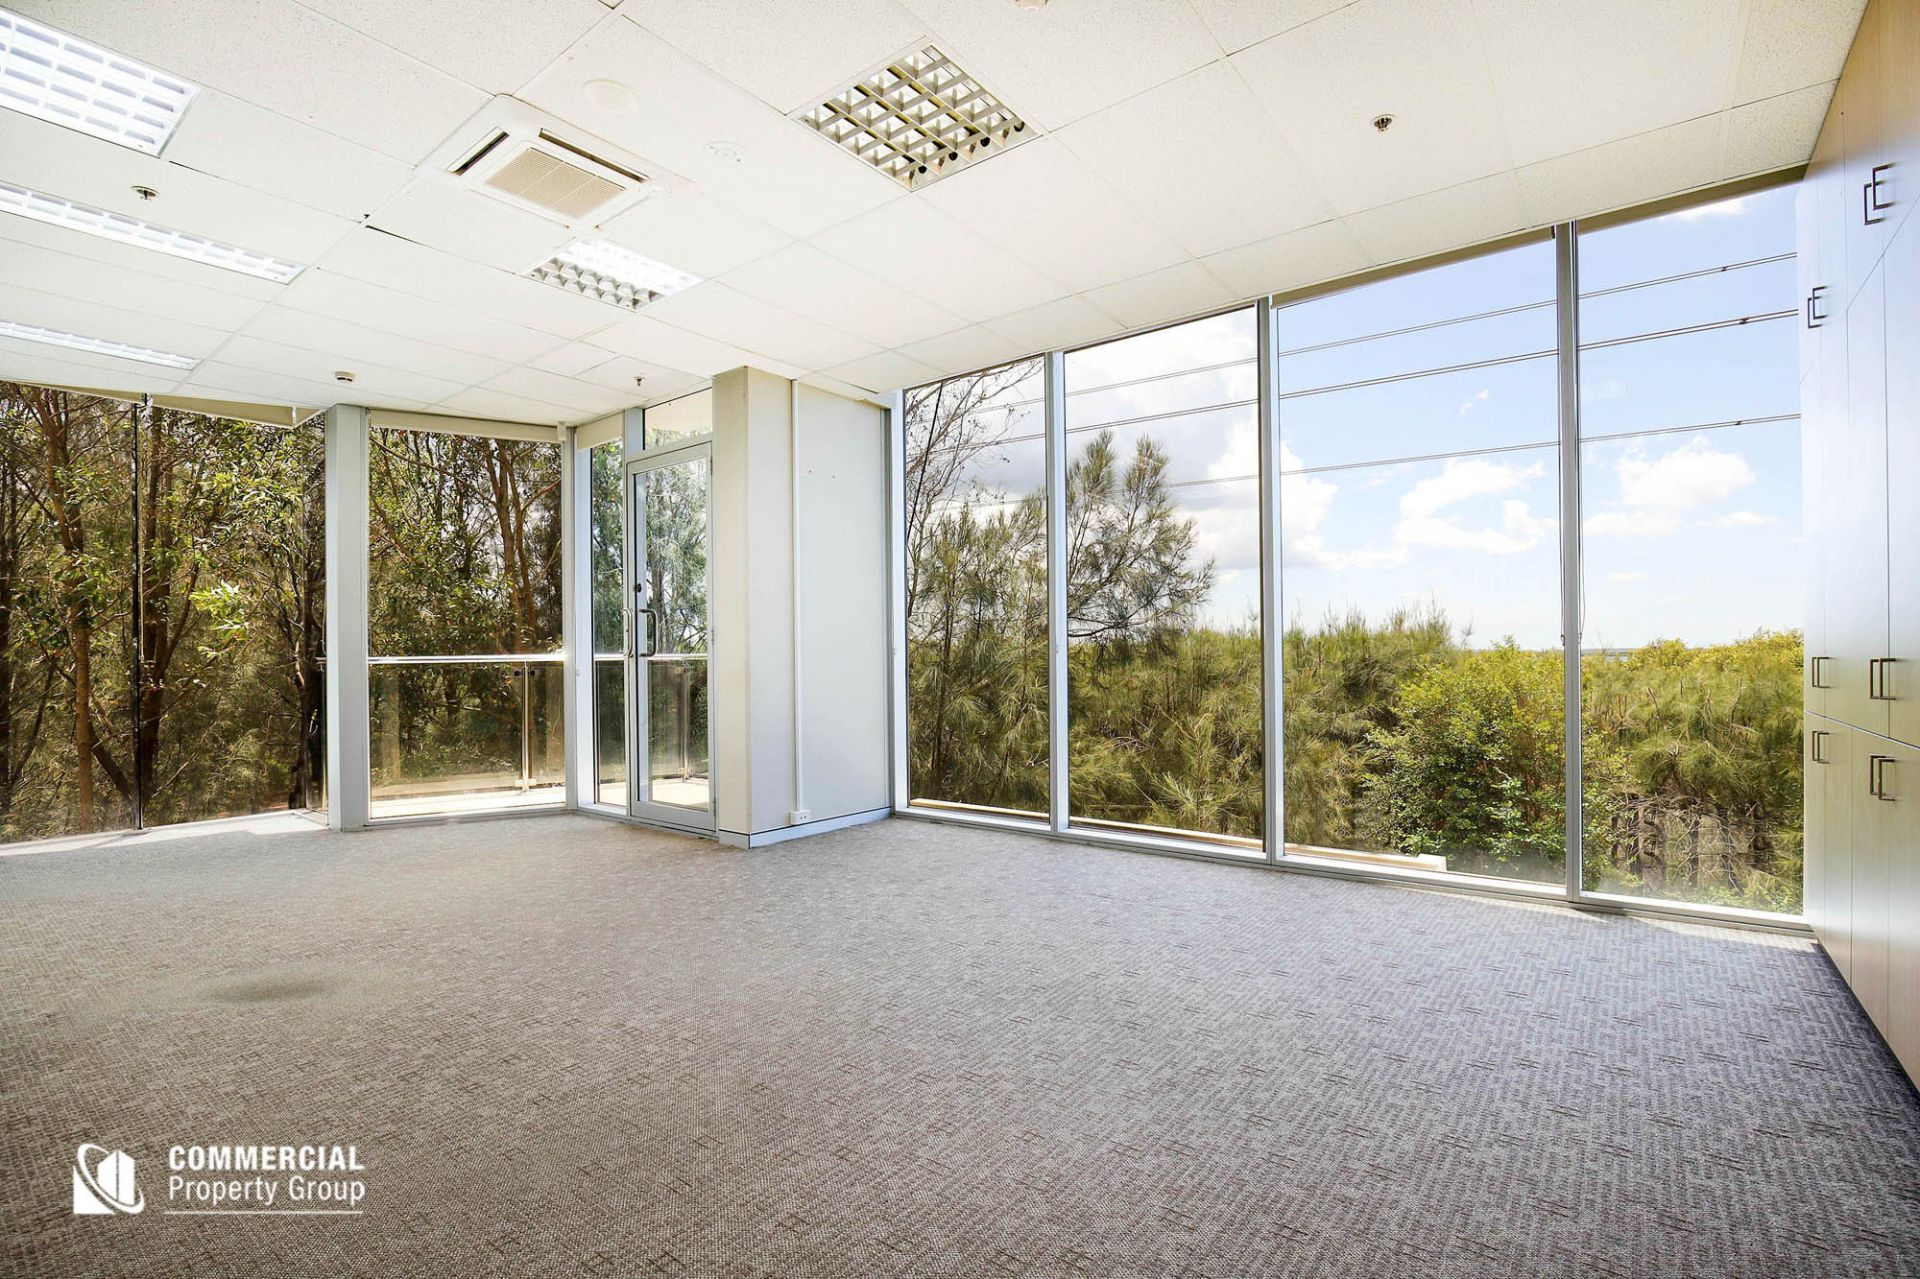 LEASED BY KYLE DEWEY - High Quality Office Space with A View